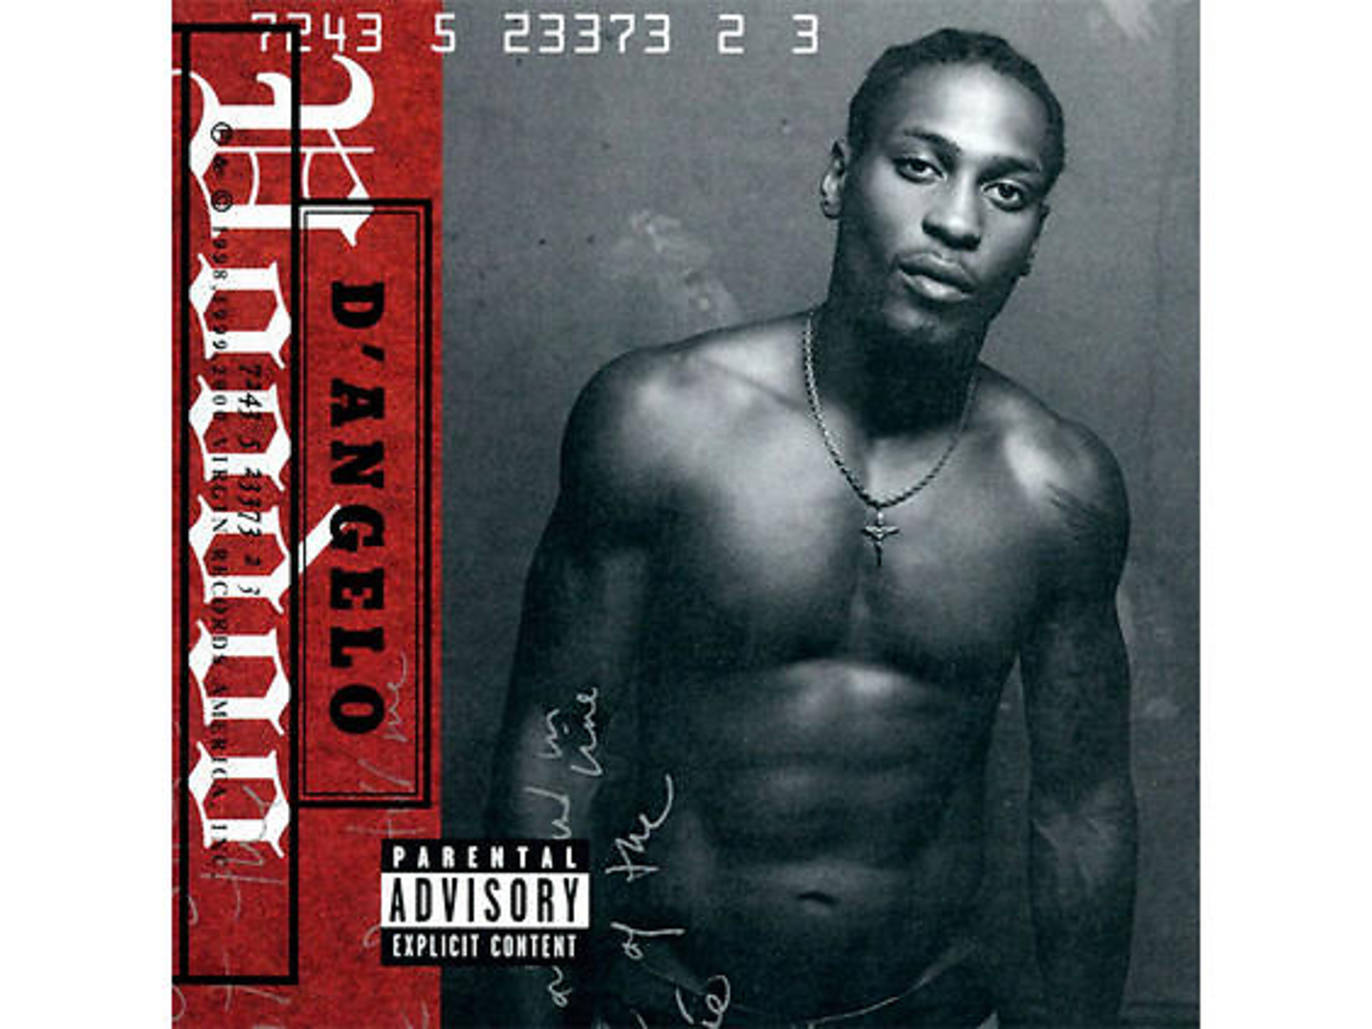 The 20 best R&B songs ever - D'Angelo - 'Untitled (How Does It Feel)